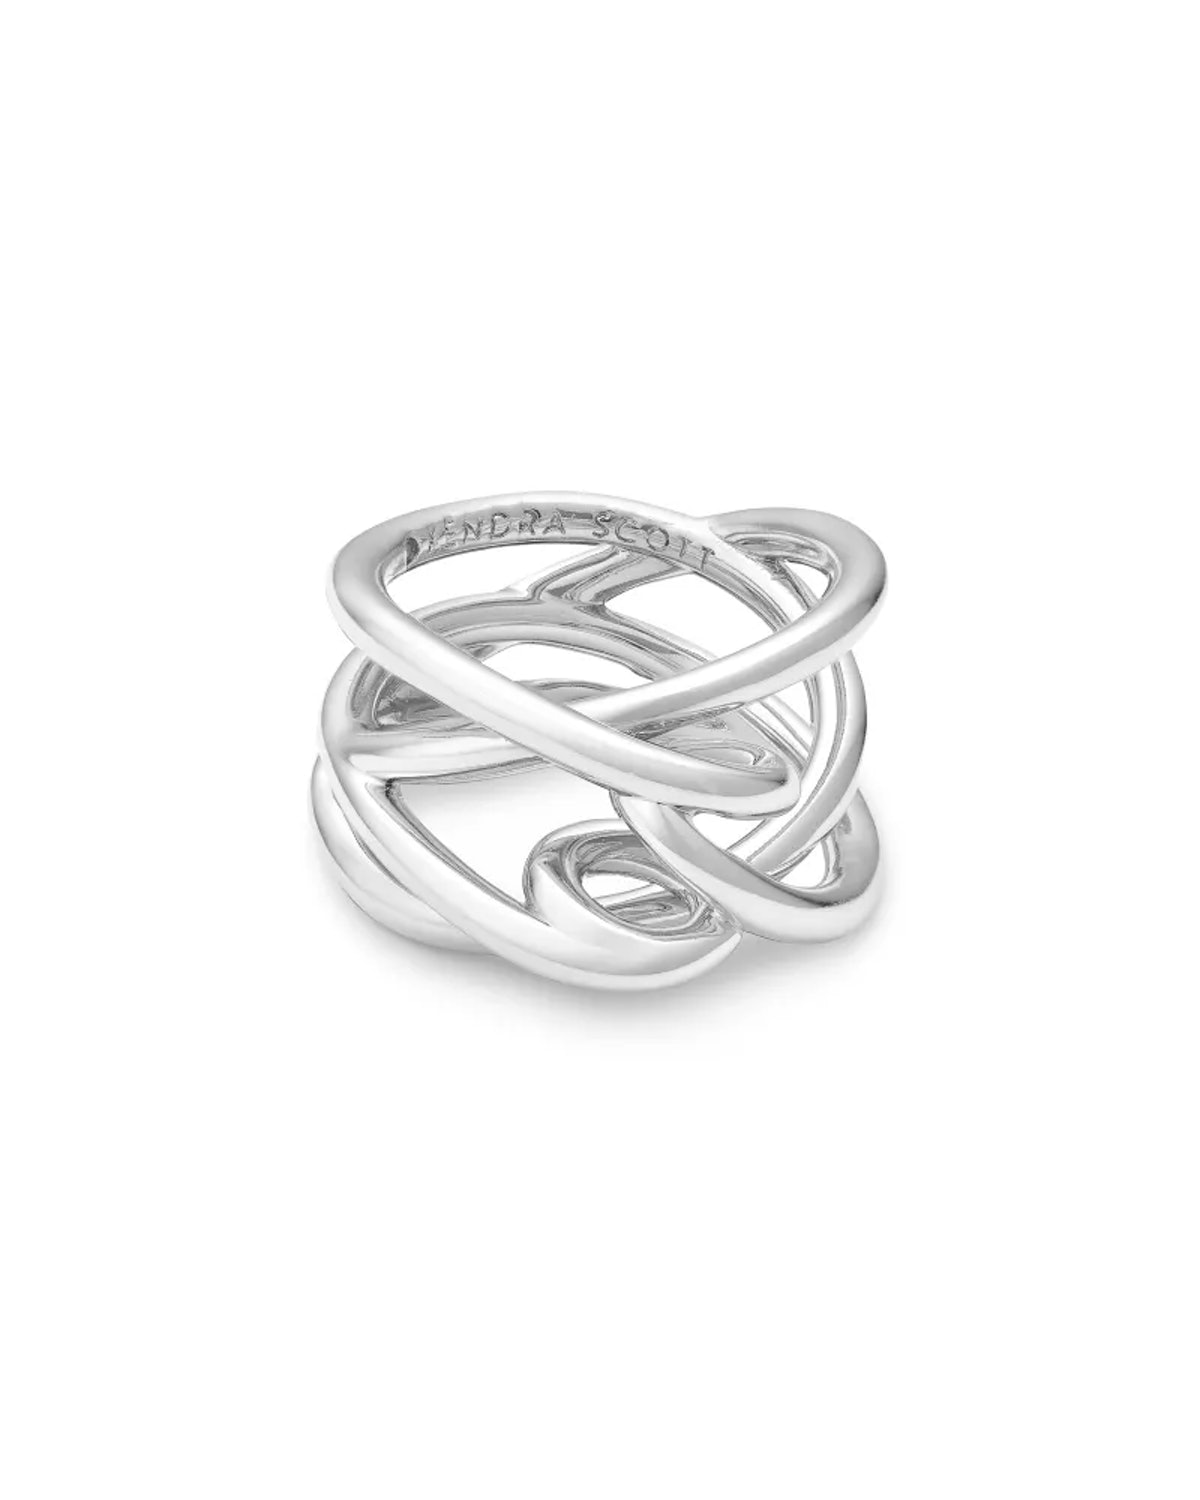 Kendra Scott Myles Band Ring In Bright Silver